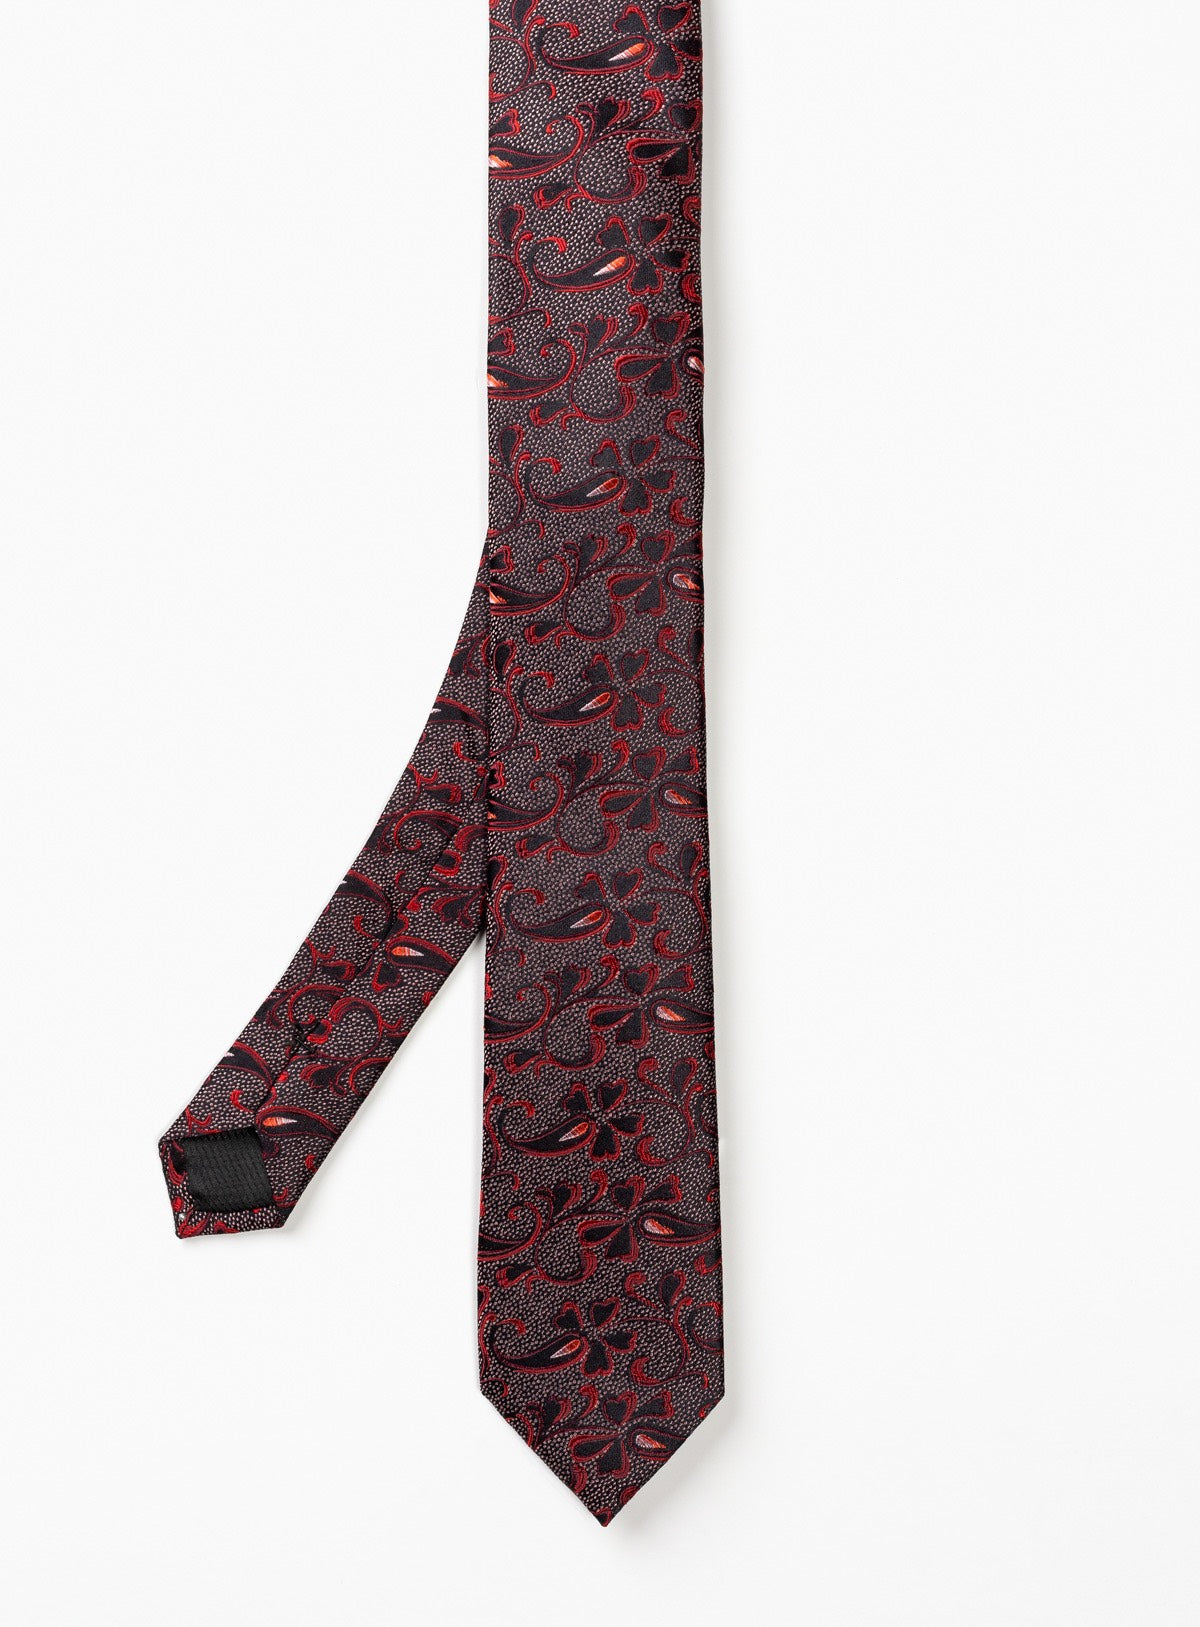 subtil paisley tie - anthony of london -red